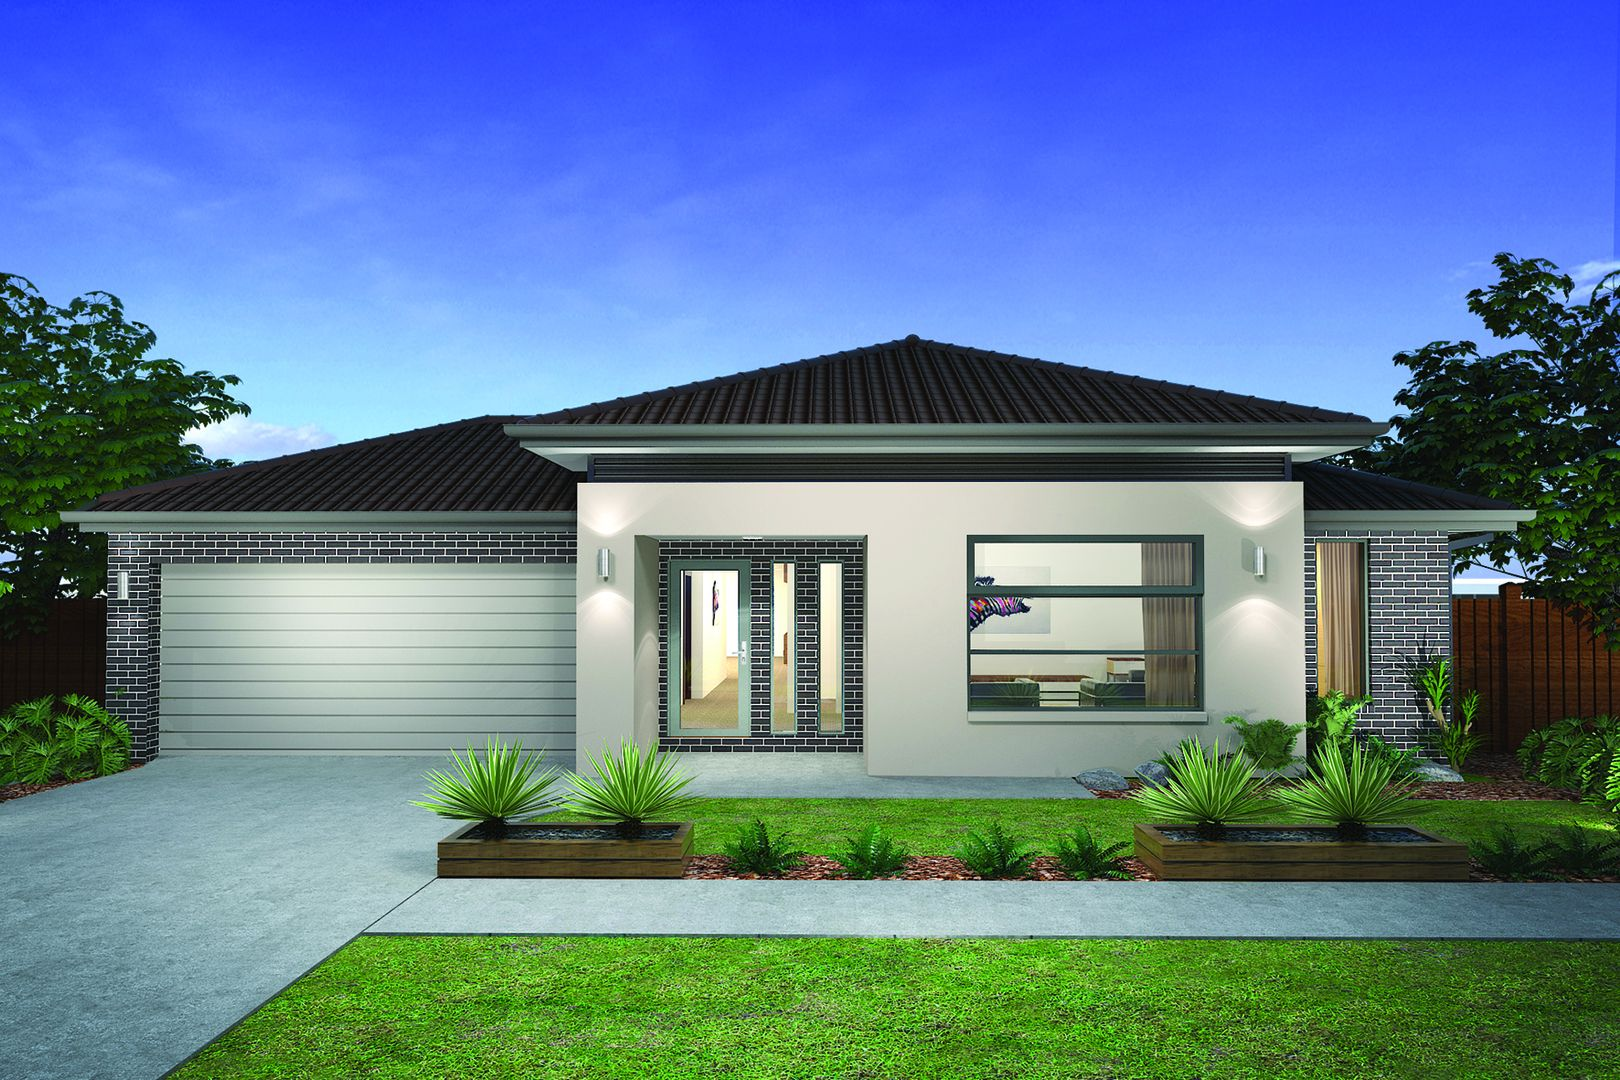 2104 STONEHILL, Maddingley VIC 3340, Image 0